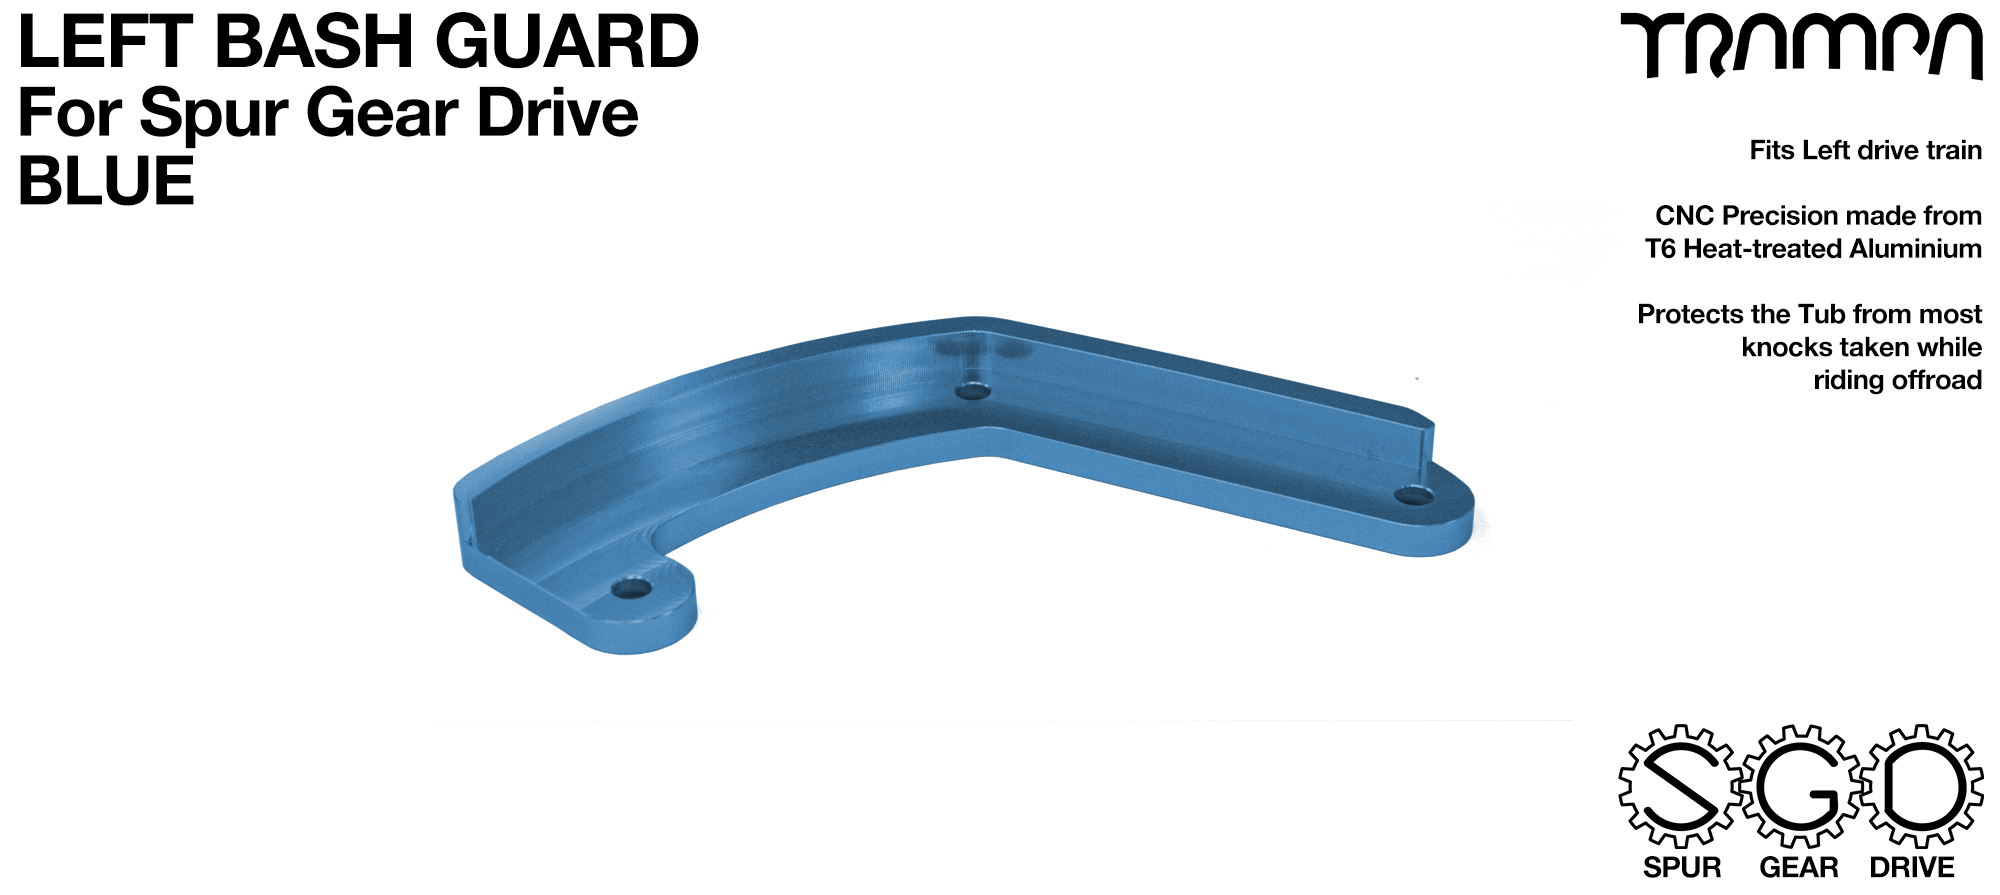 SPUR Gear Drive Bash Guard - LEFT Side - BLUE